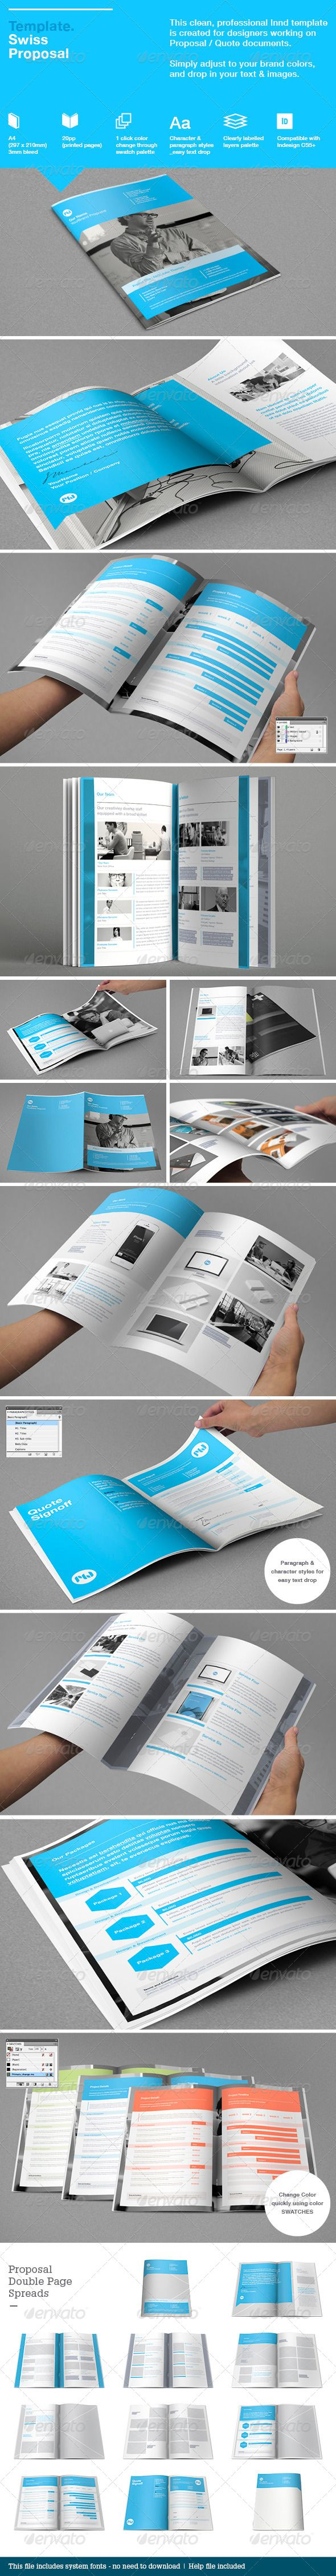 Best Handbook Layout Design Inspiration Images On